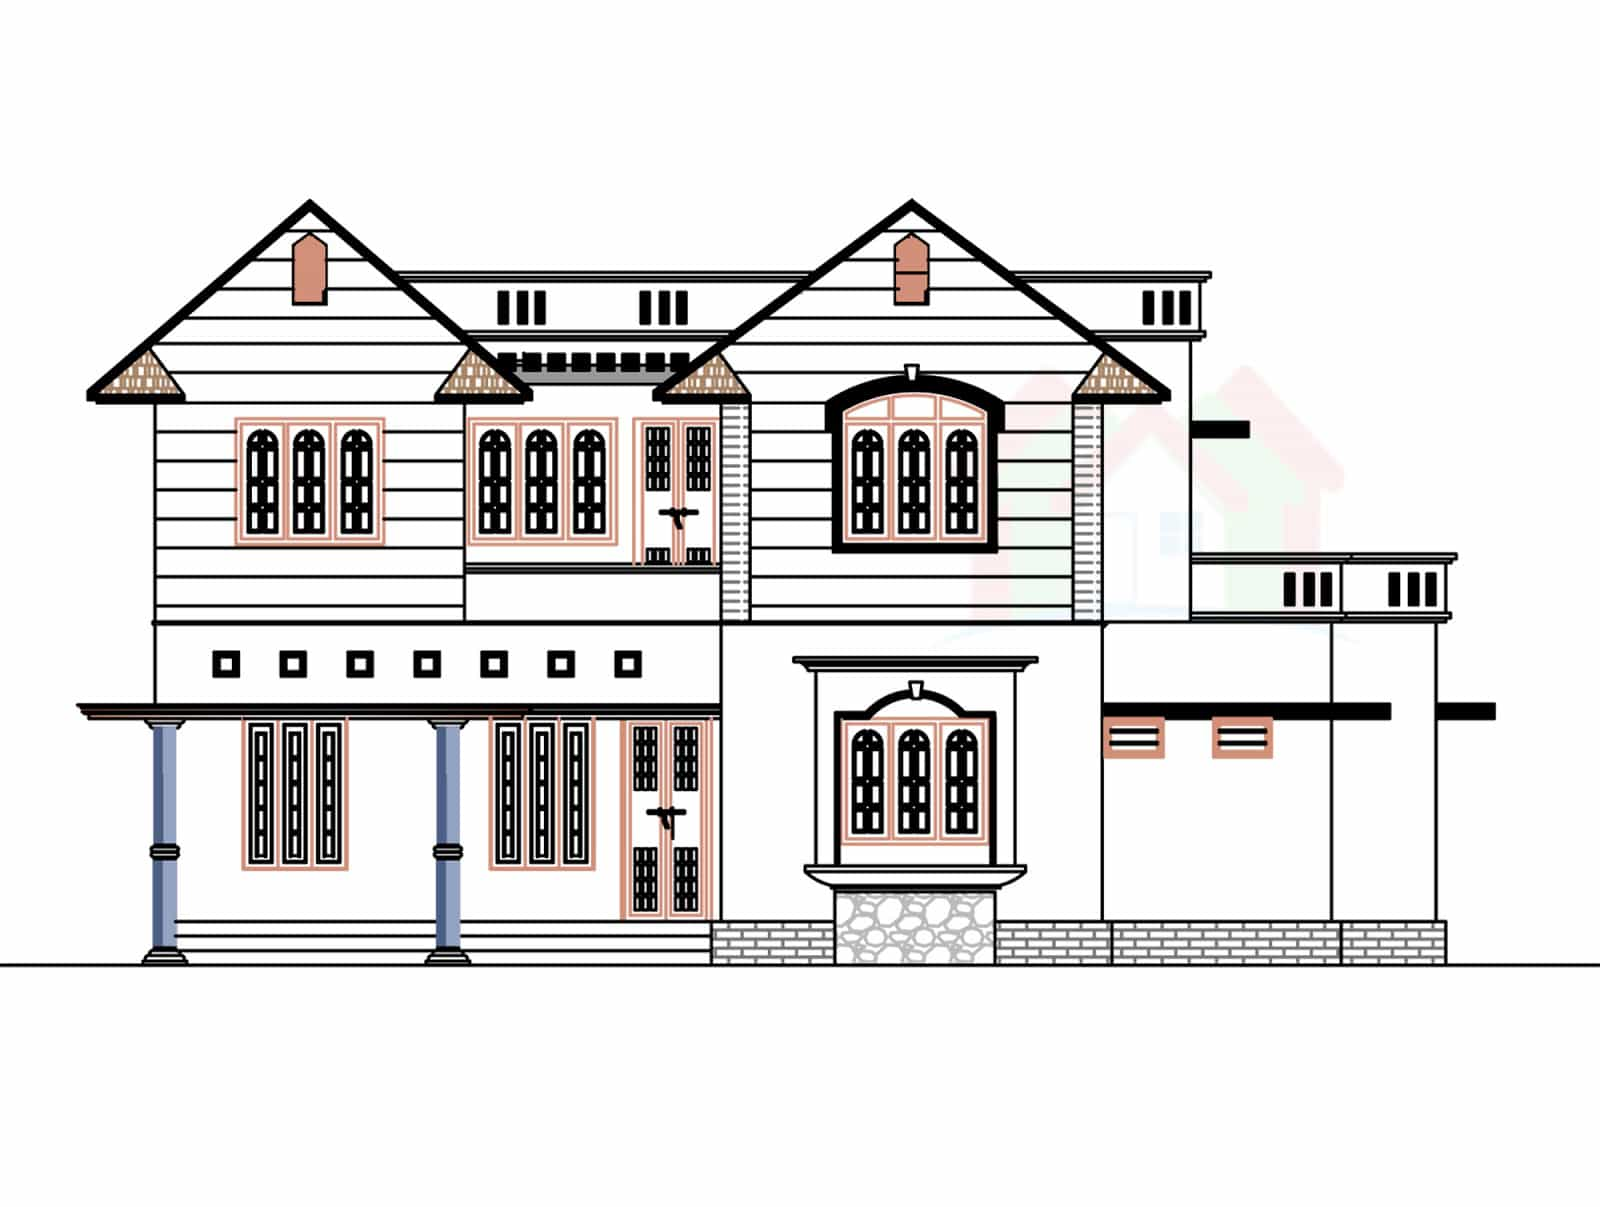 Kerala house design at an area of 2226 sq.ft.The Kerala house plans ...